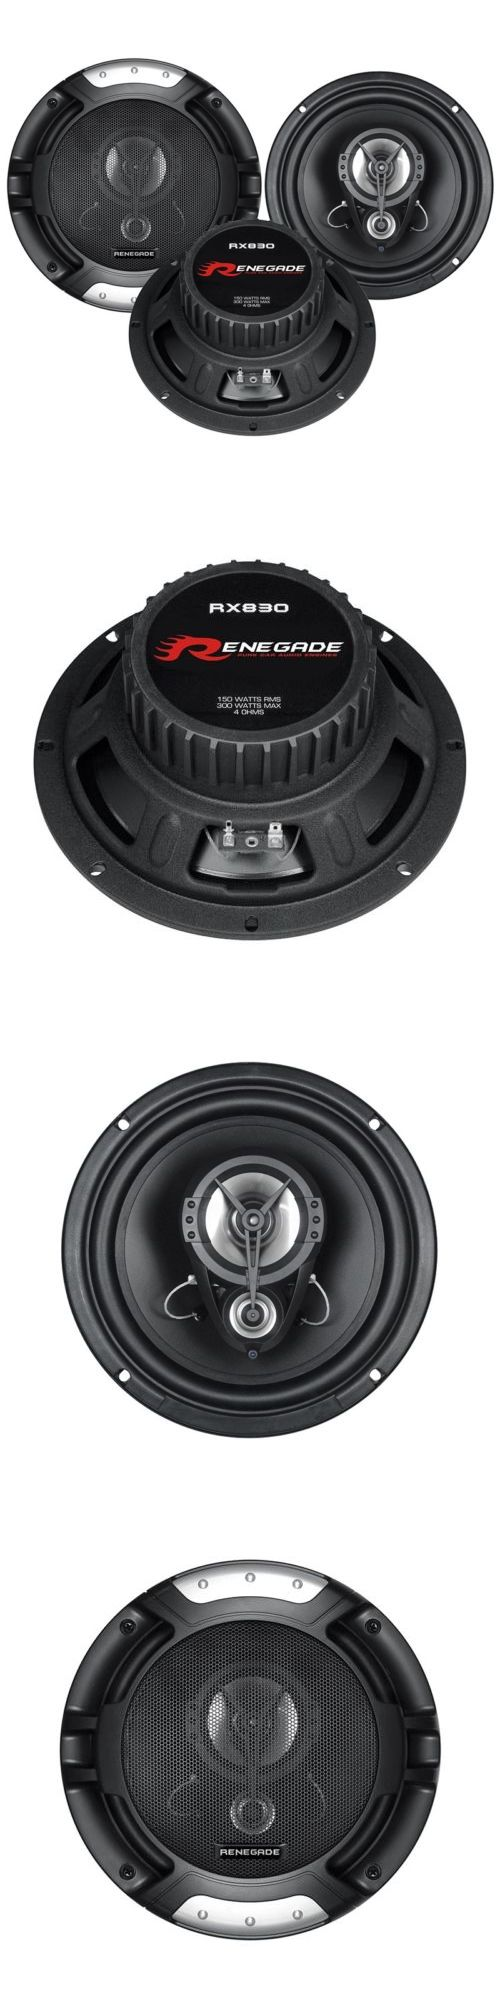 Car Speakers and Speaker Systems: Renegade Rx830 8 300 Watt 3-Way 4 Ohm Coaxial Car Audio Stereo Speaker (Pair) -> BUY IT NOW ONLY: $43.95 on eBay!